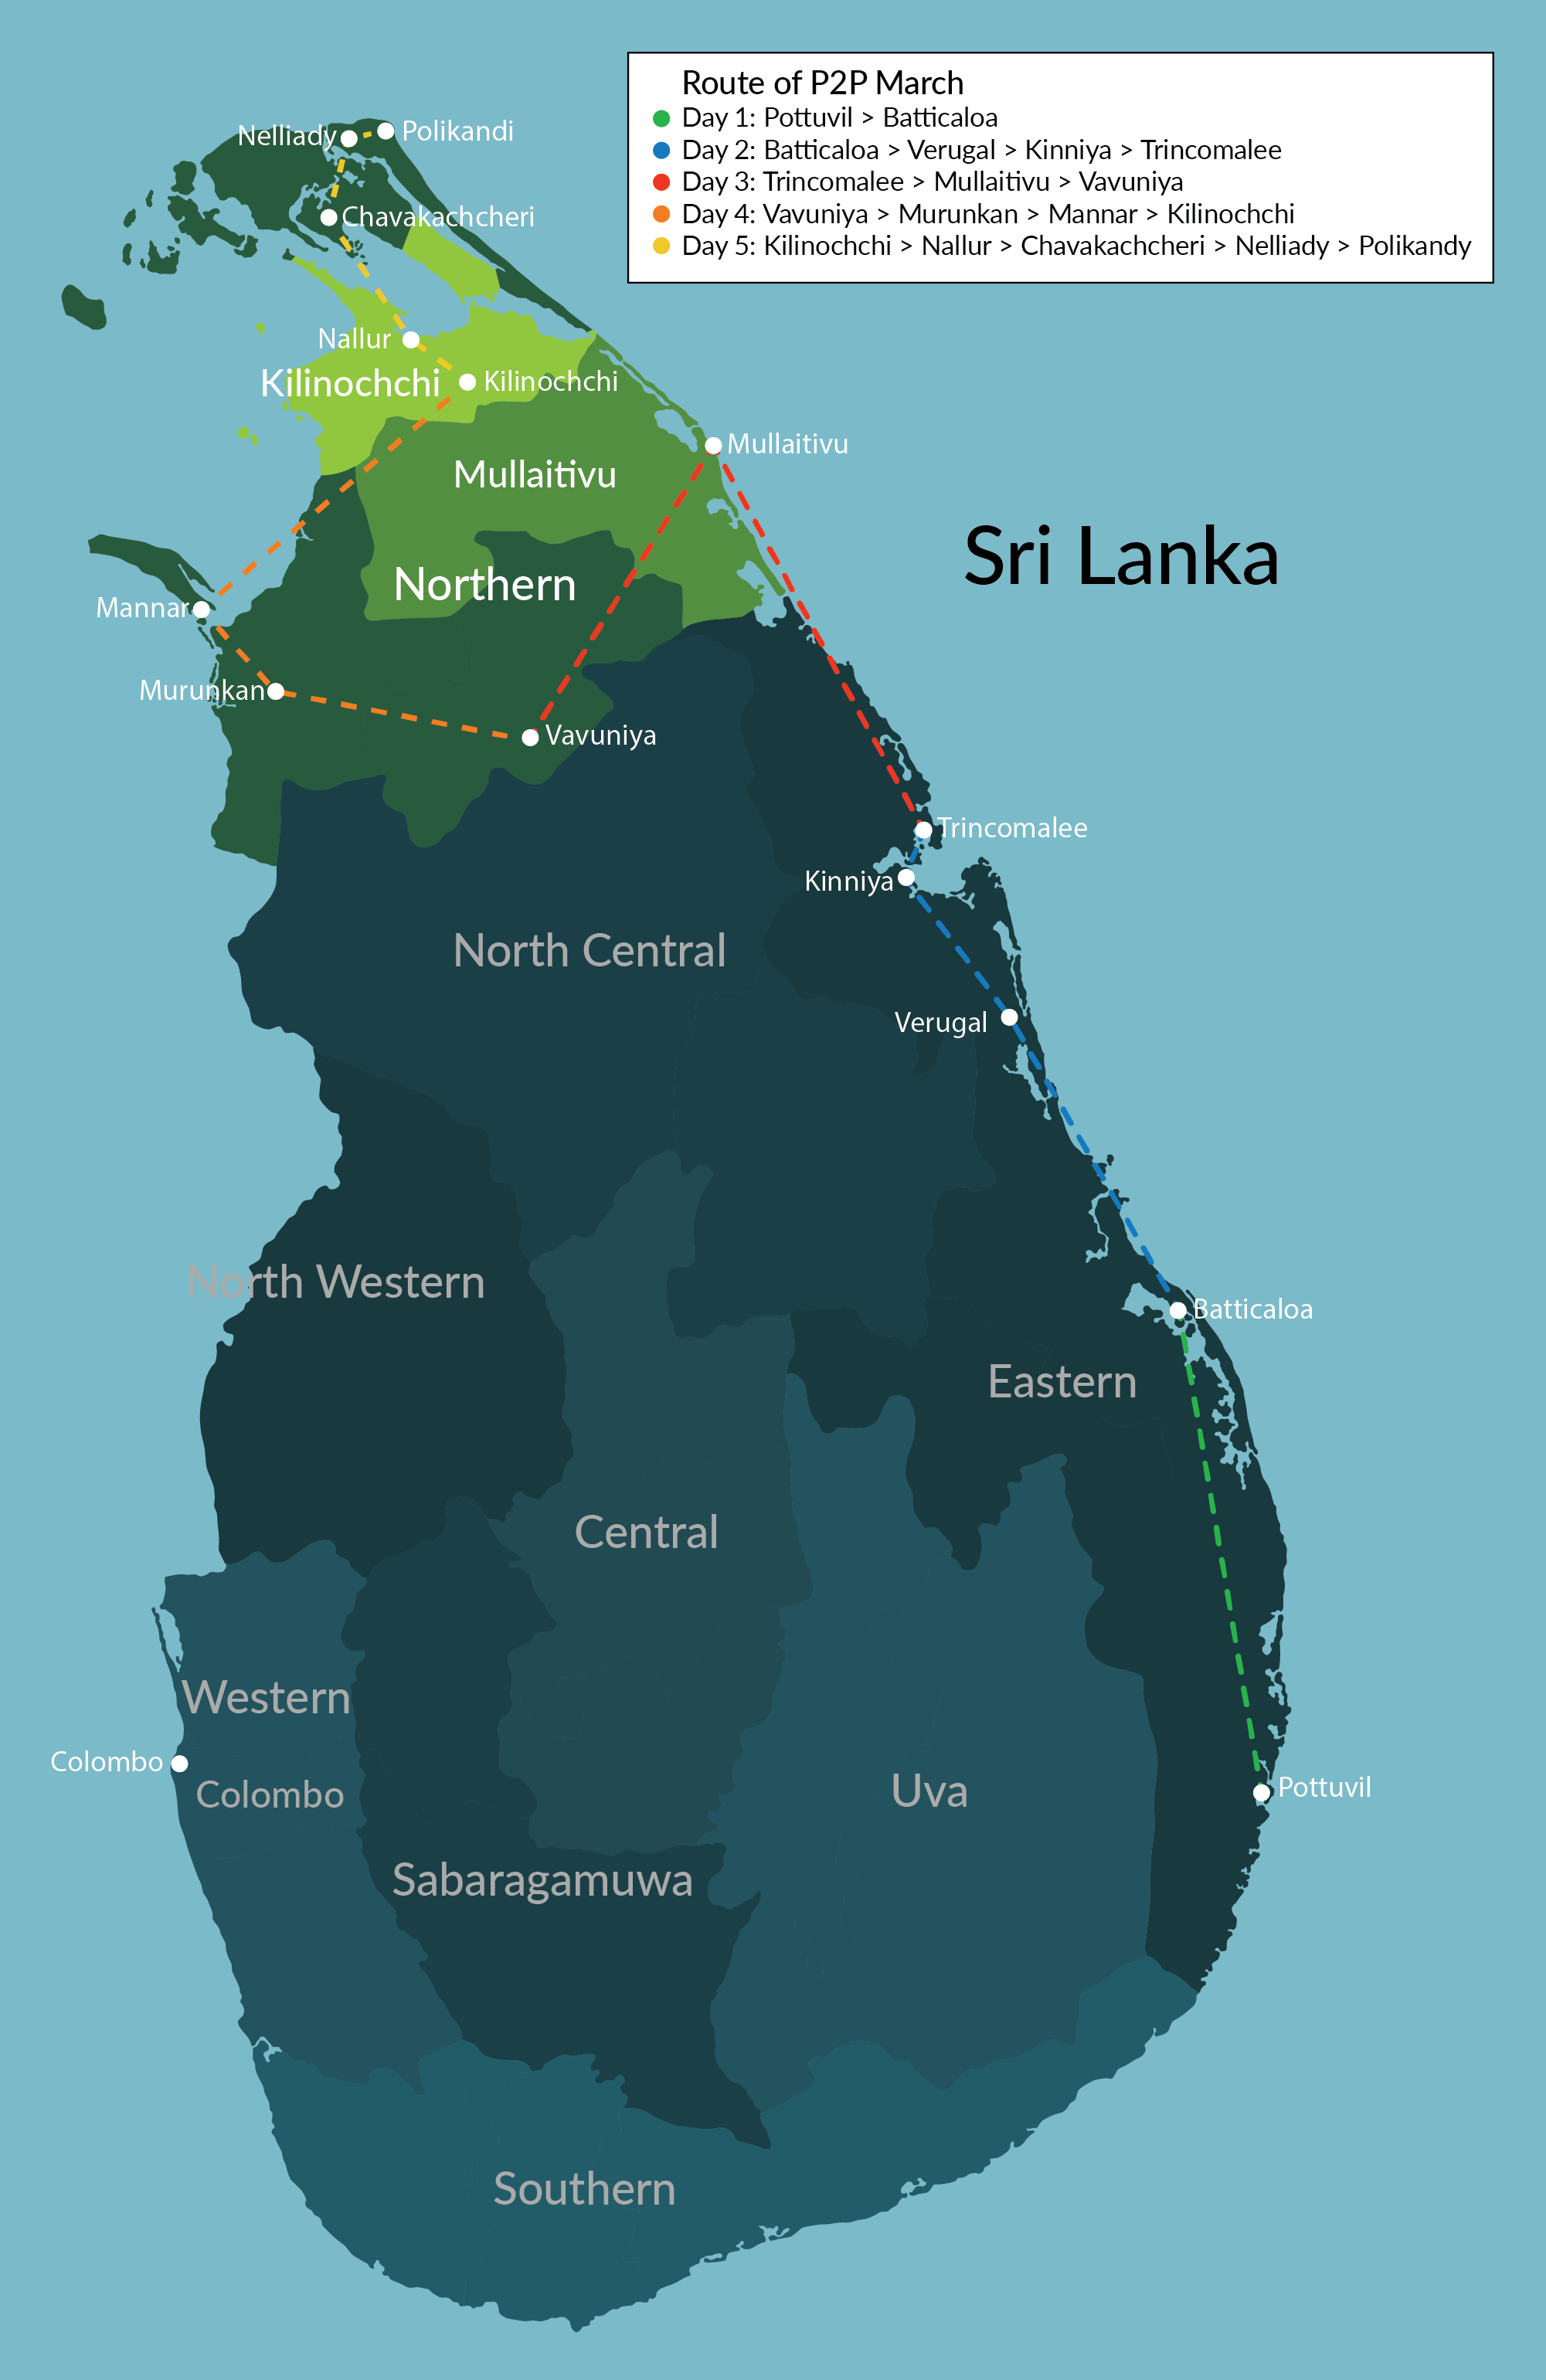 The most robust act of defiance of the Sri Lankan government's use of the coronavirus to suppress freedoms was P2P, a march organized by Tamil and Muslim activists in February 2021. The P2P march route is shown here.